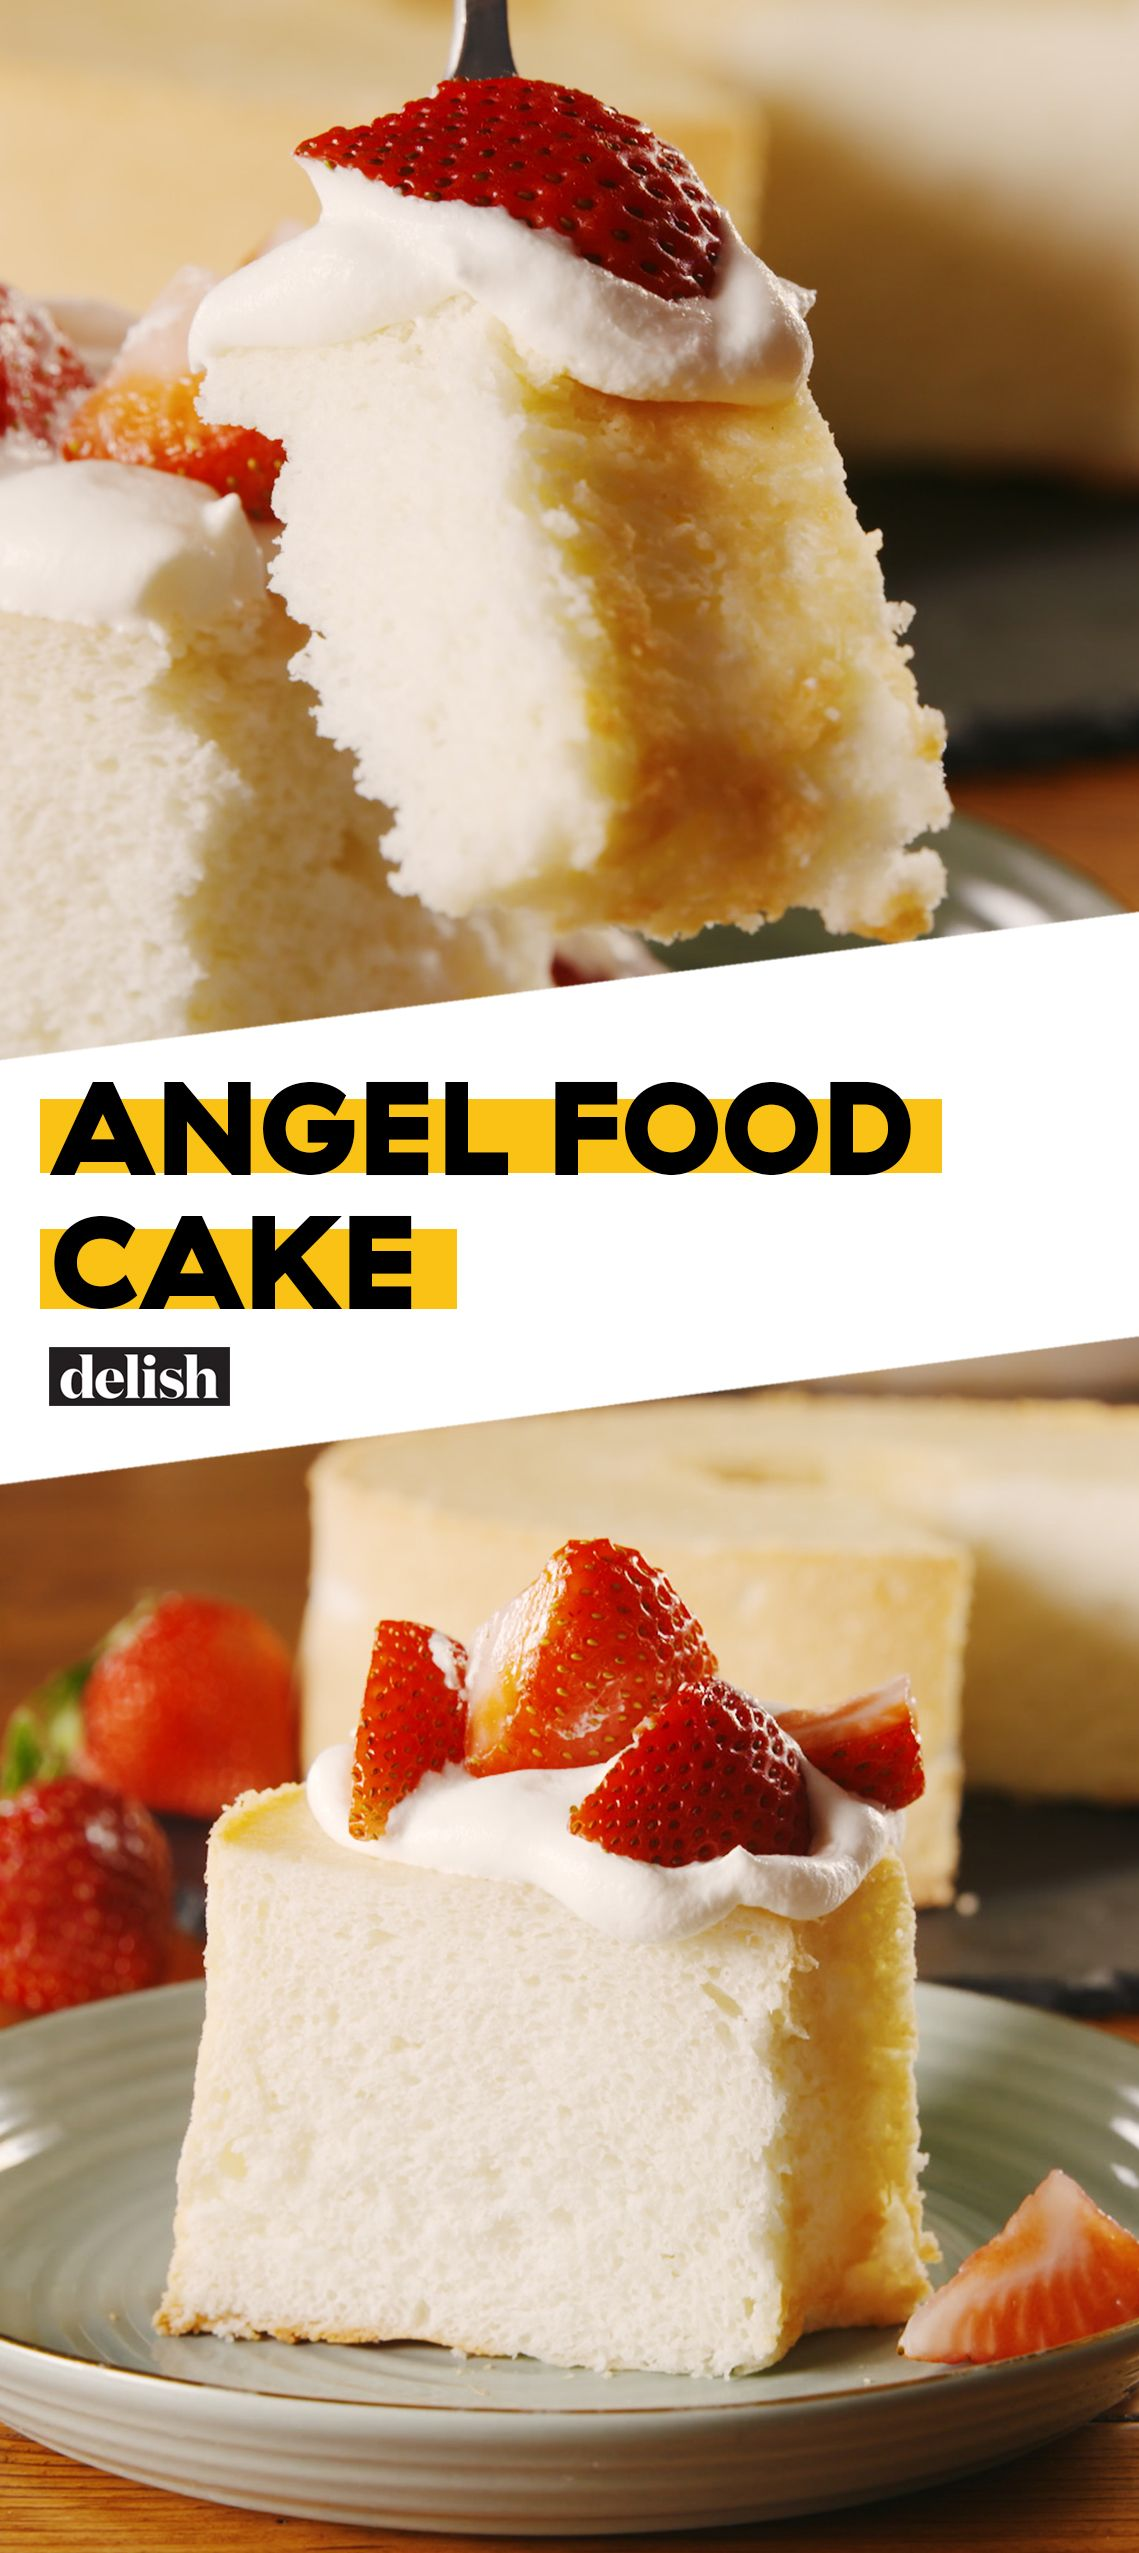 Angel Food Cake Recipe Cake Recipes Desserts Angel Food Cake